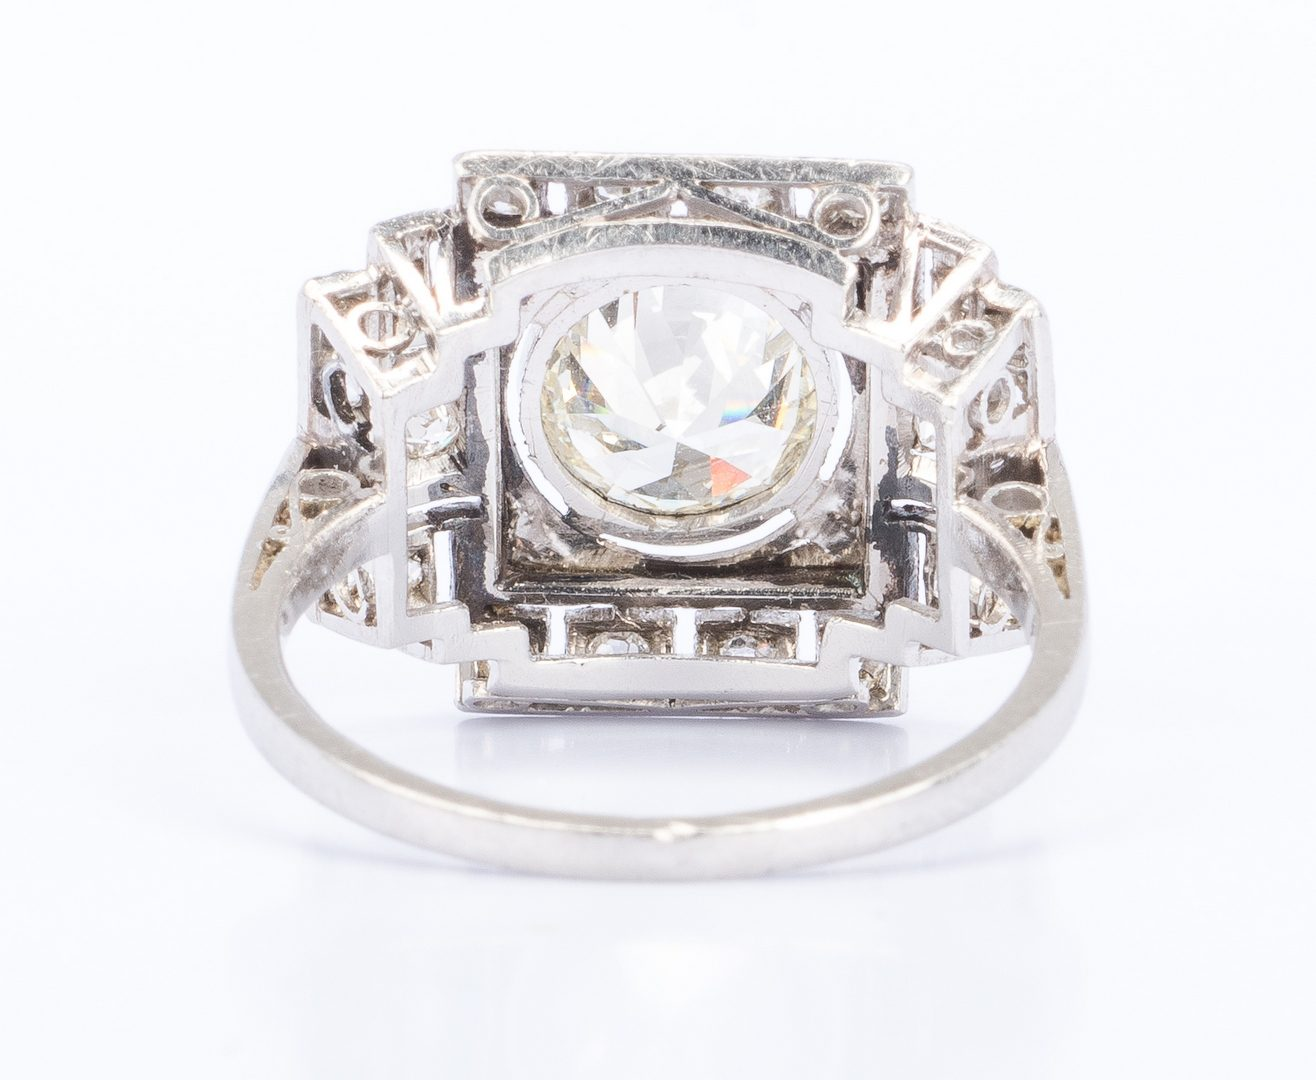 Lot 26: Art Deco Plat Diamond Ring, 1.42 ctw